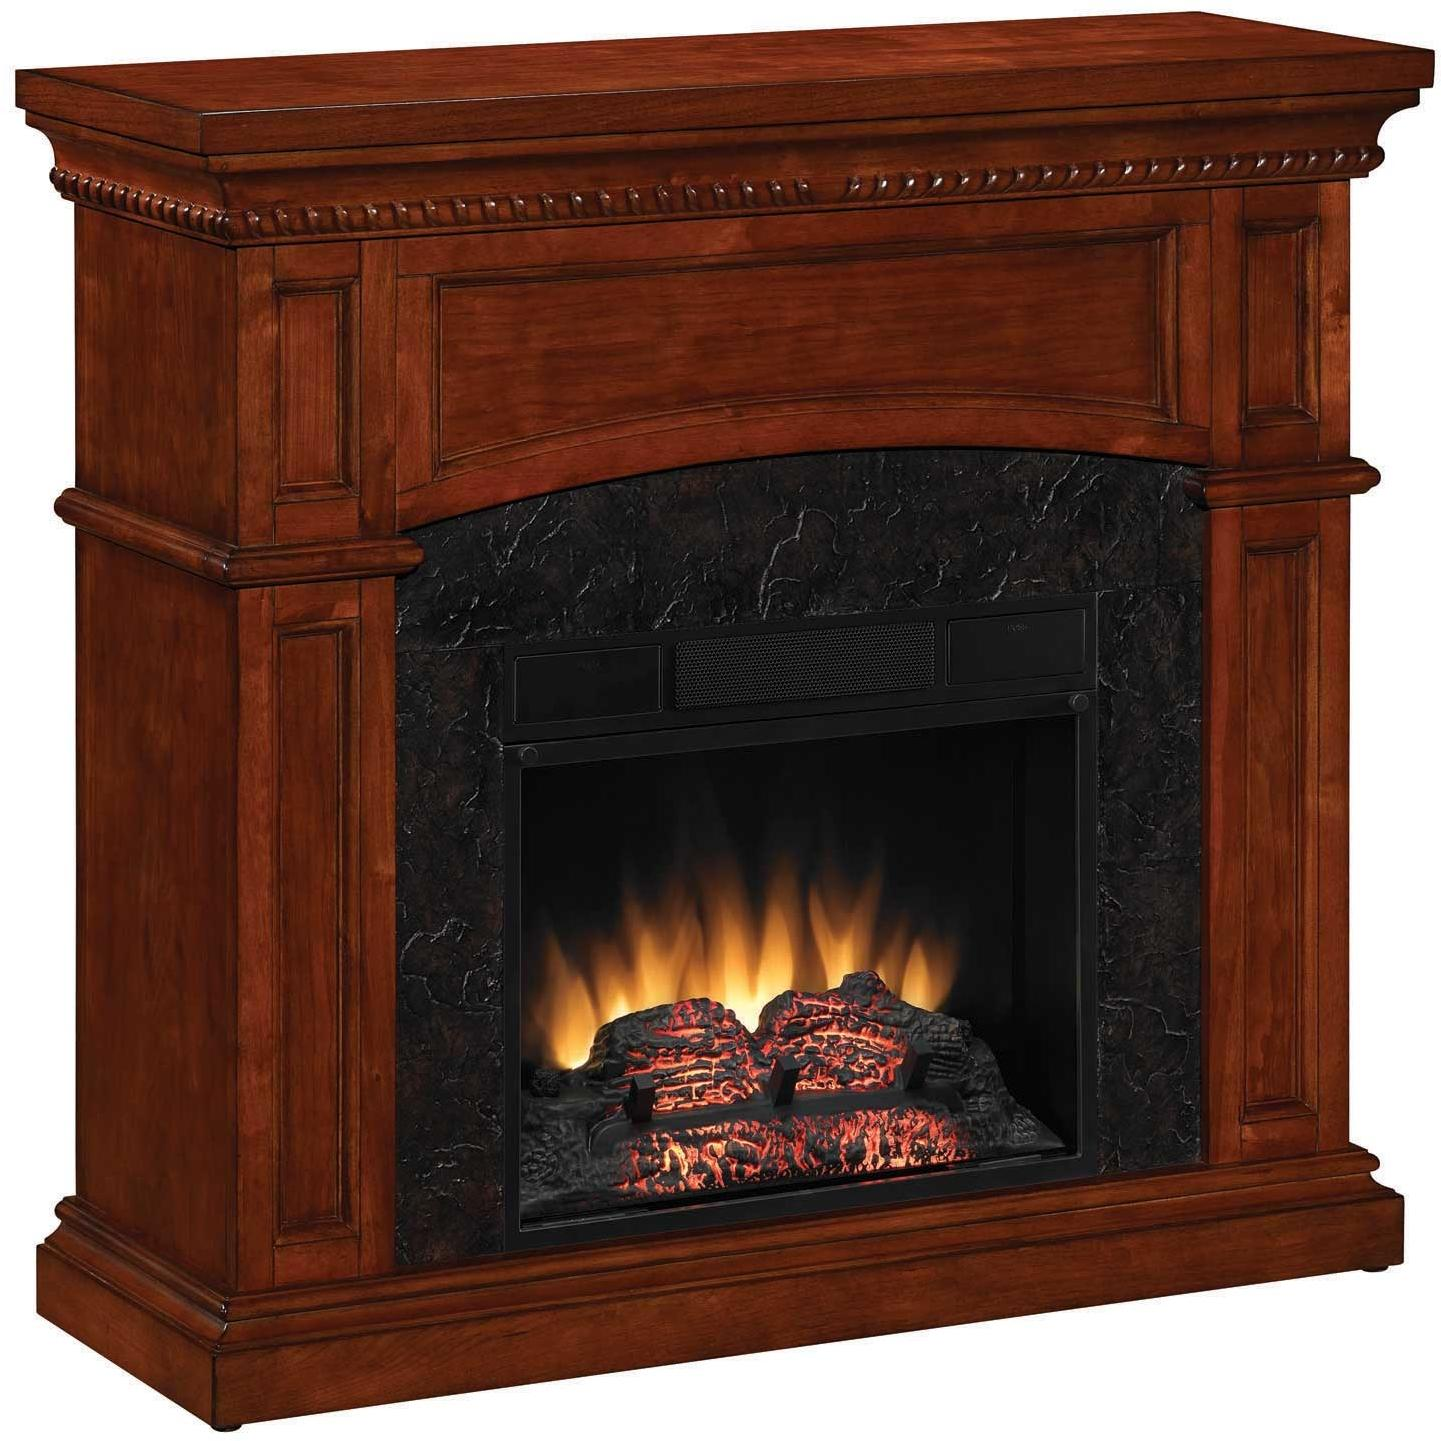 ClassicFlame 18DM1141-C230 Nantucket 18 Inch Dual Use Electric Fireplace - Golden Cherry